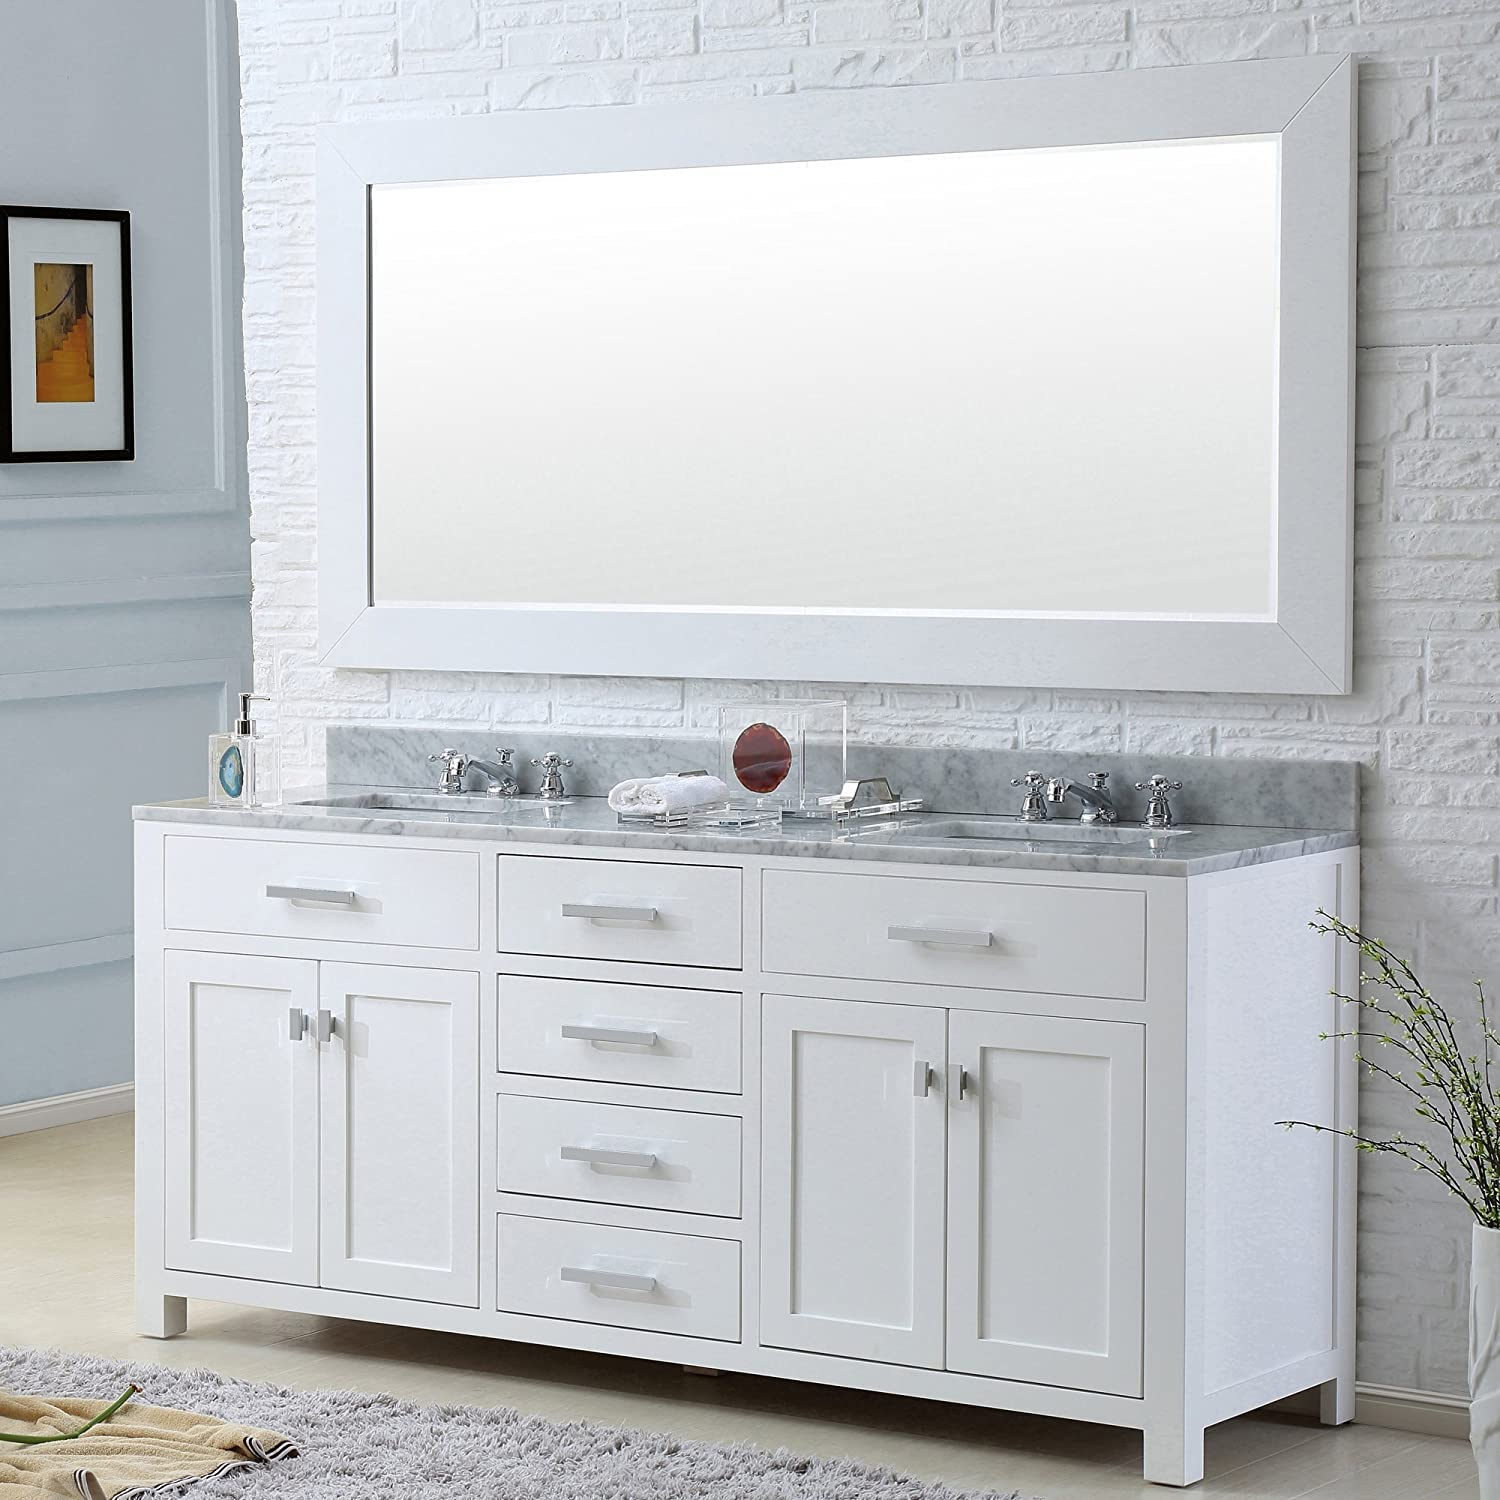 Water Creation MADISON 60WB 60 Inch Solid White Double Sink Bathroom Vanity  with Matching Framed Mirror     Amazon comWater Creation MADISON 60WB 60 Inch Solid White Double Sink  . Large Double Sink Bathroom Vanity. Home Design Ideas